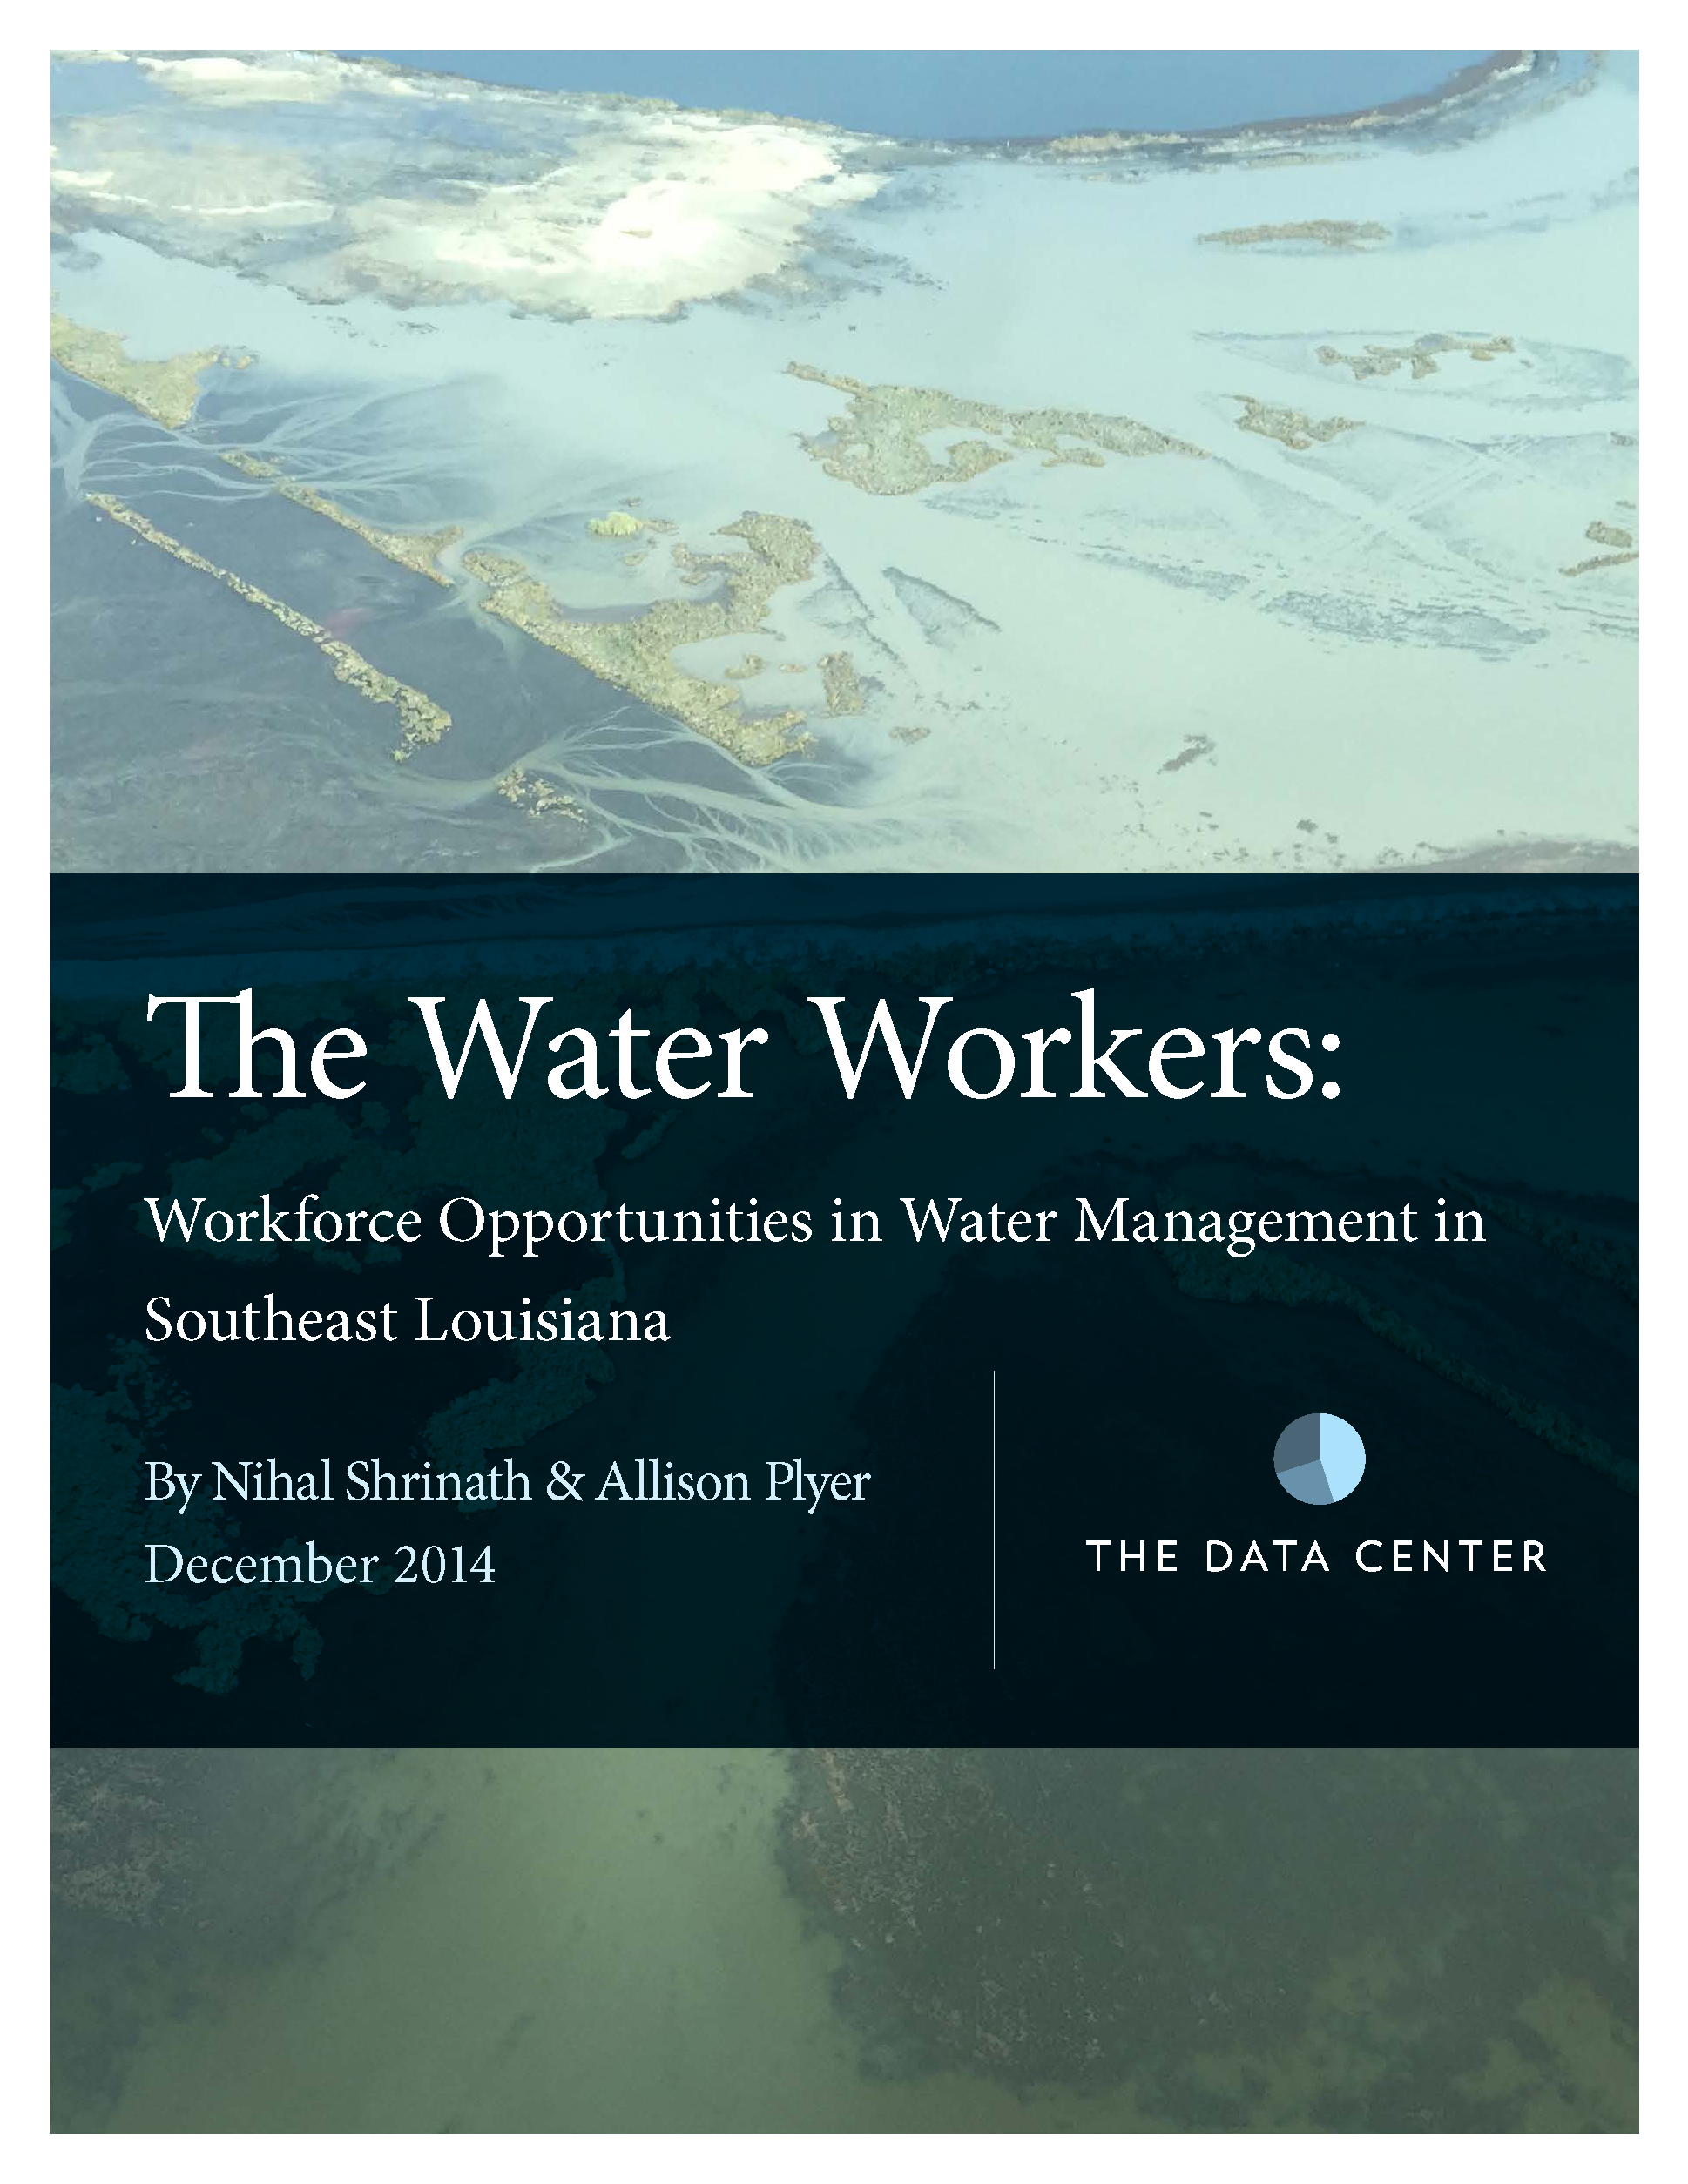 The Water Workers: Workforce Opportunities in Water Management in Southeast Louisiana